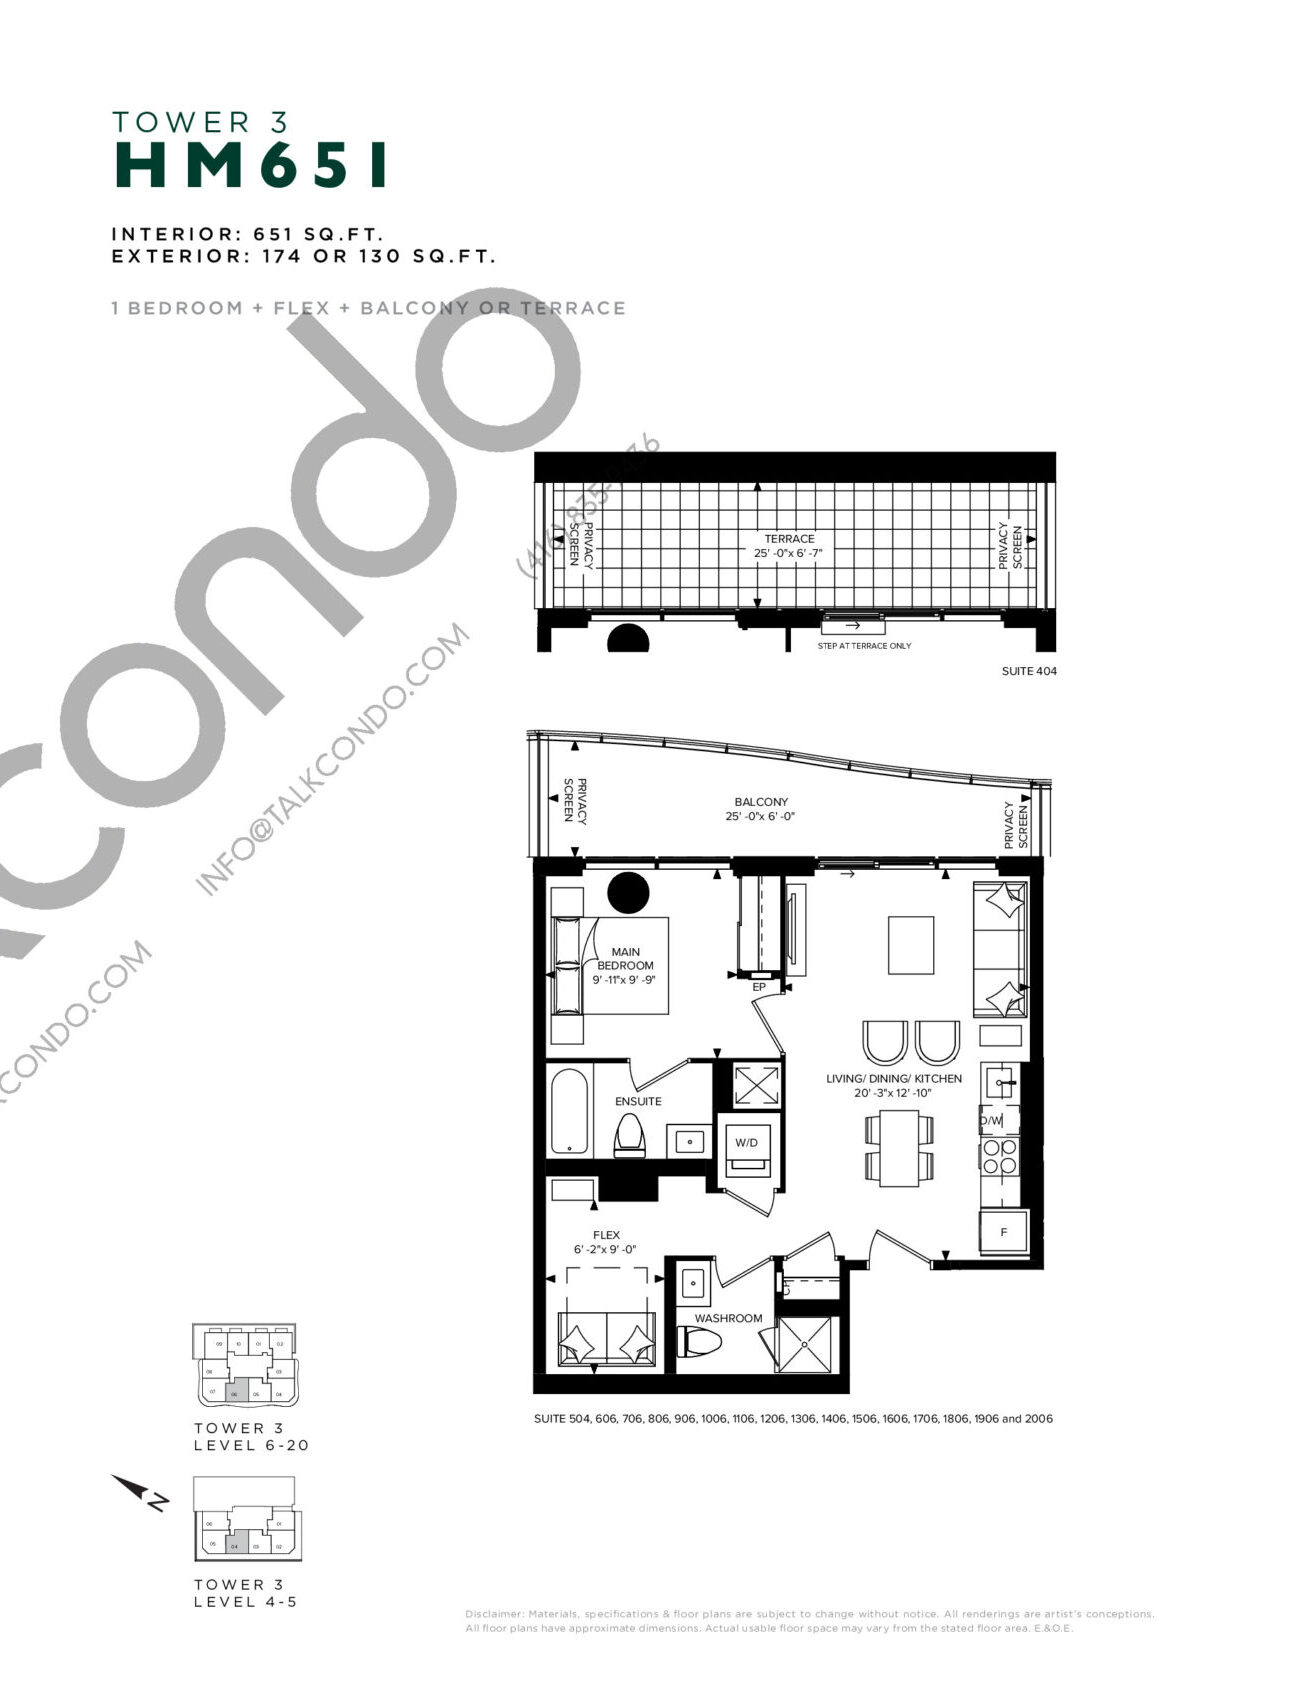 HM 651 (Tower 3) Floor Plan at Hillmont at SXSW Condos - 651 sq.ft